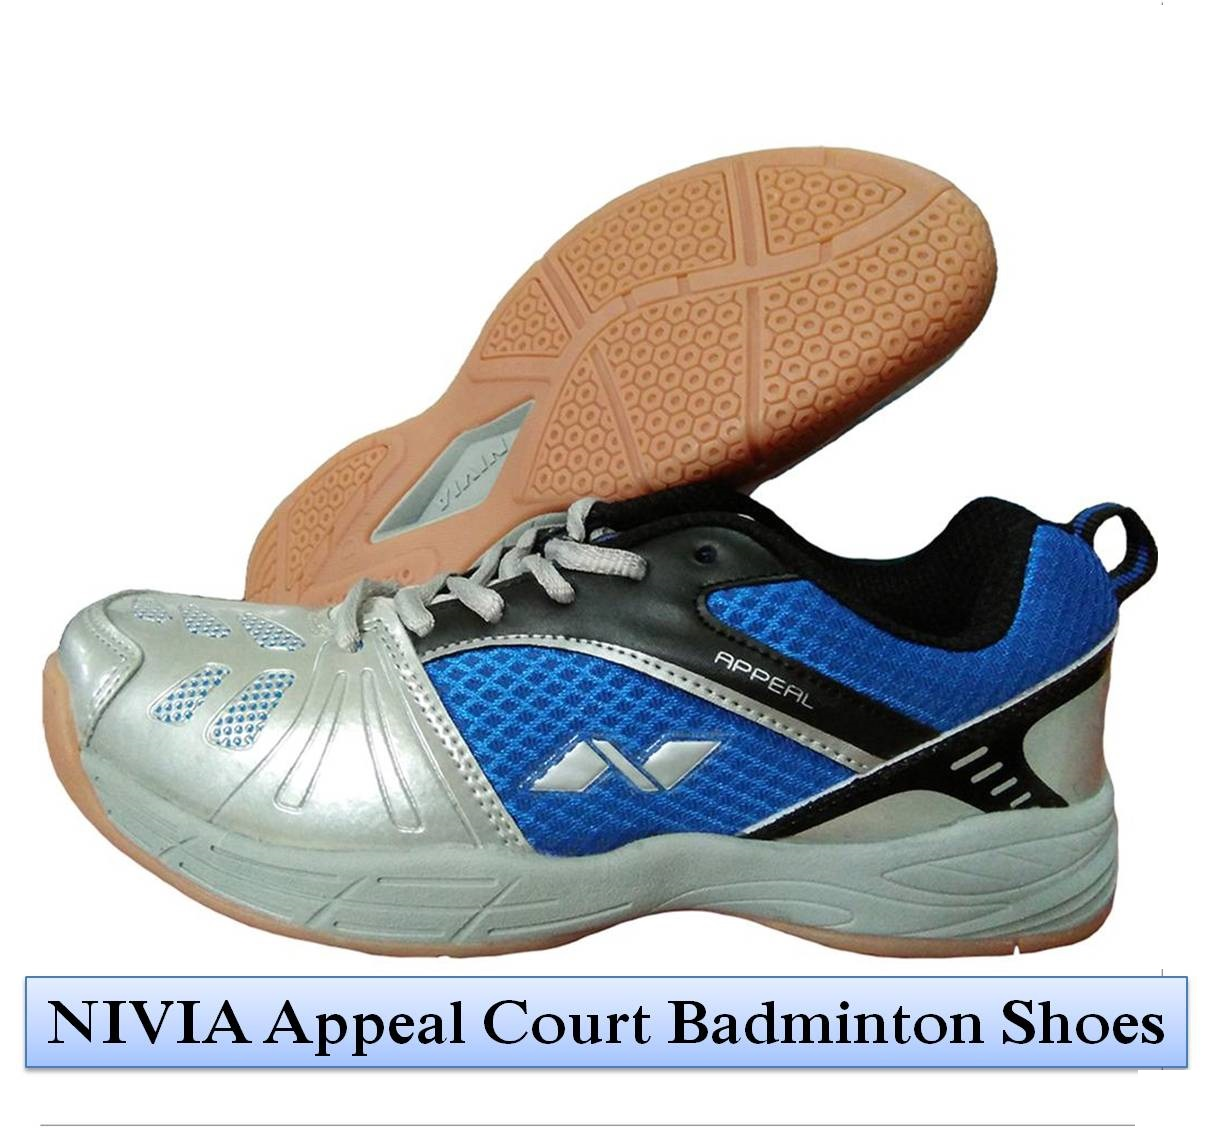 NIVIA_Appeal_Court_Badminton_Shoes_Blog_Image